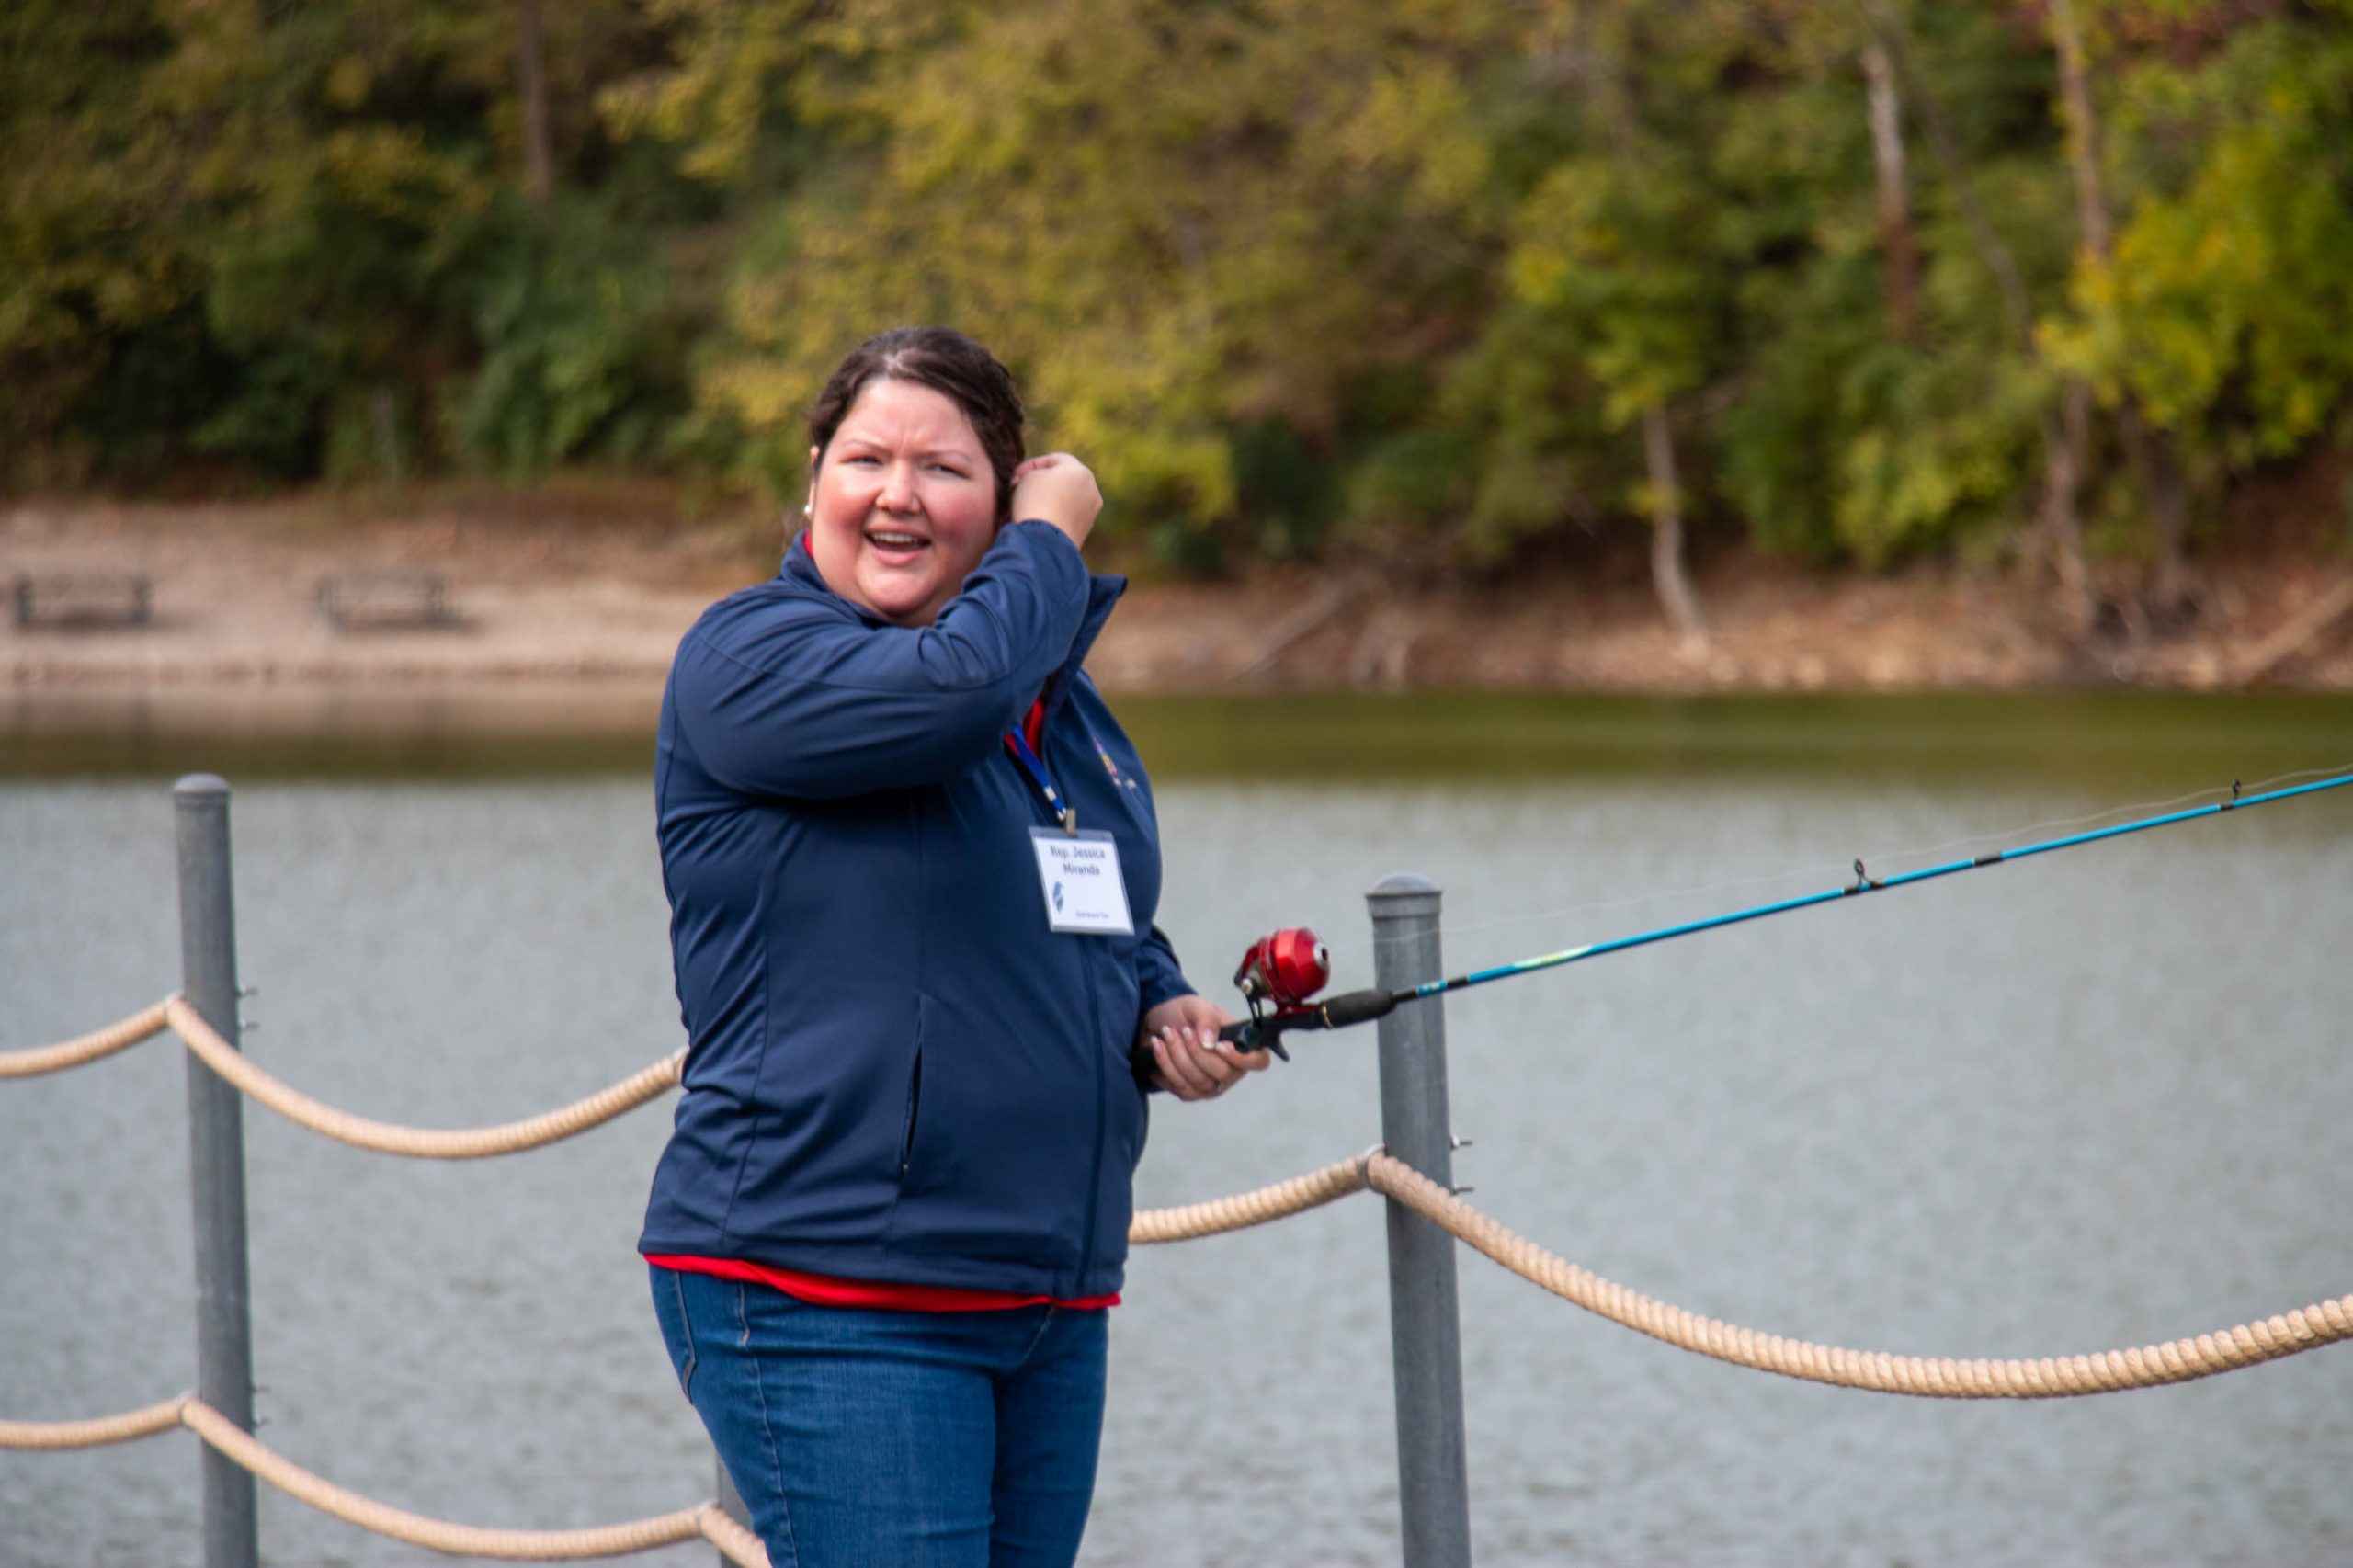 A woman smiles as she casts a line at Lake Isabella.